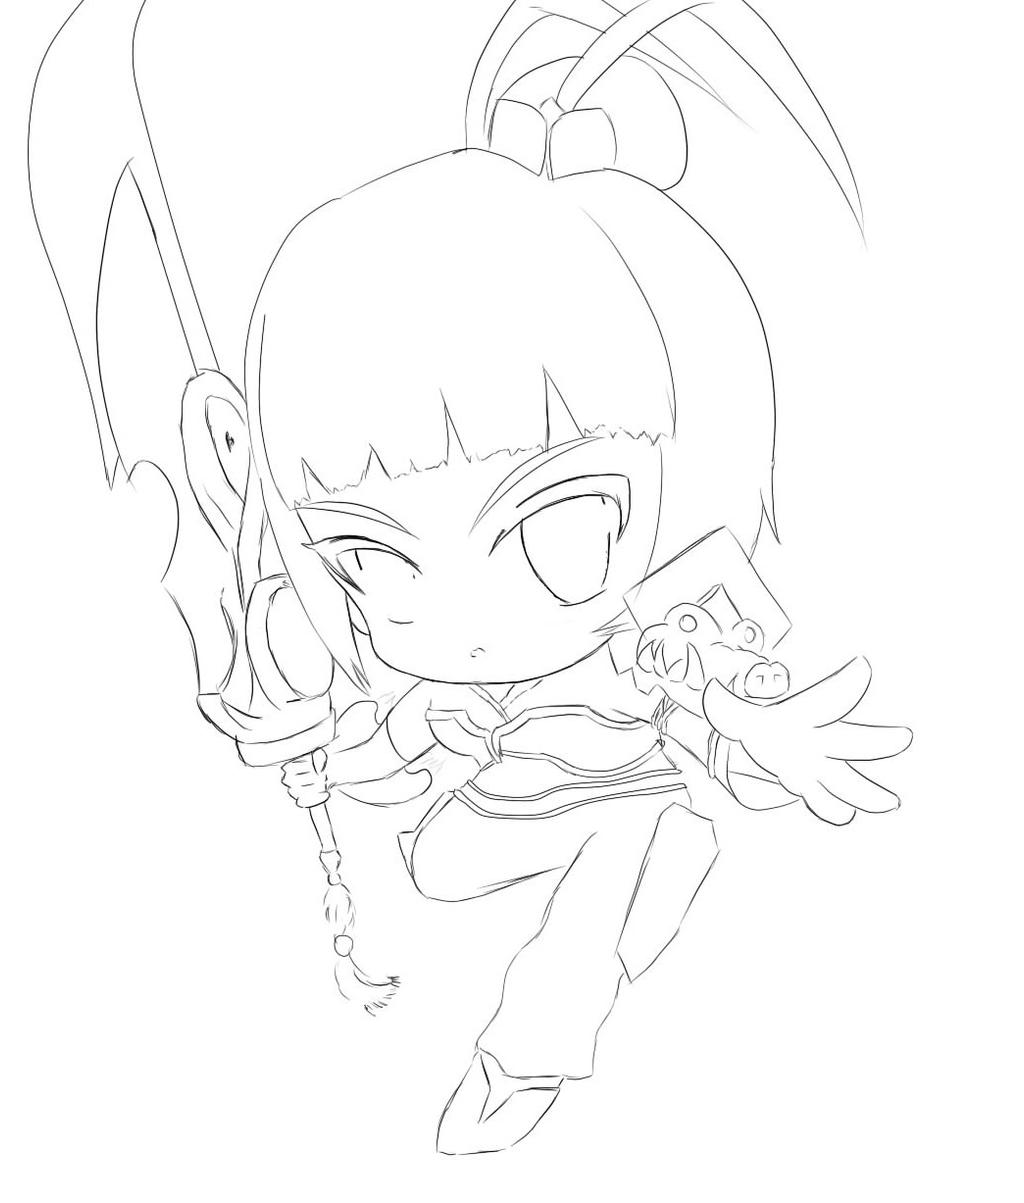 Riven Dragonblade chibi by Adiyy on deviantART